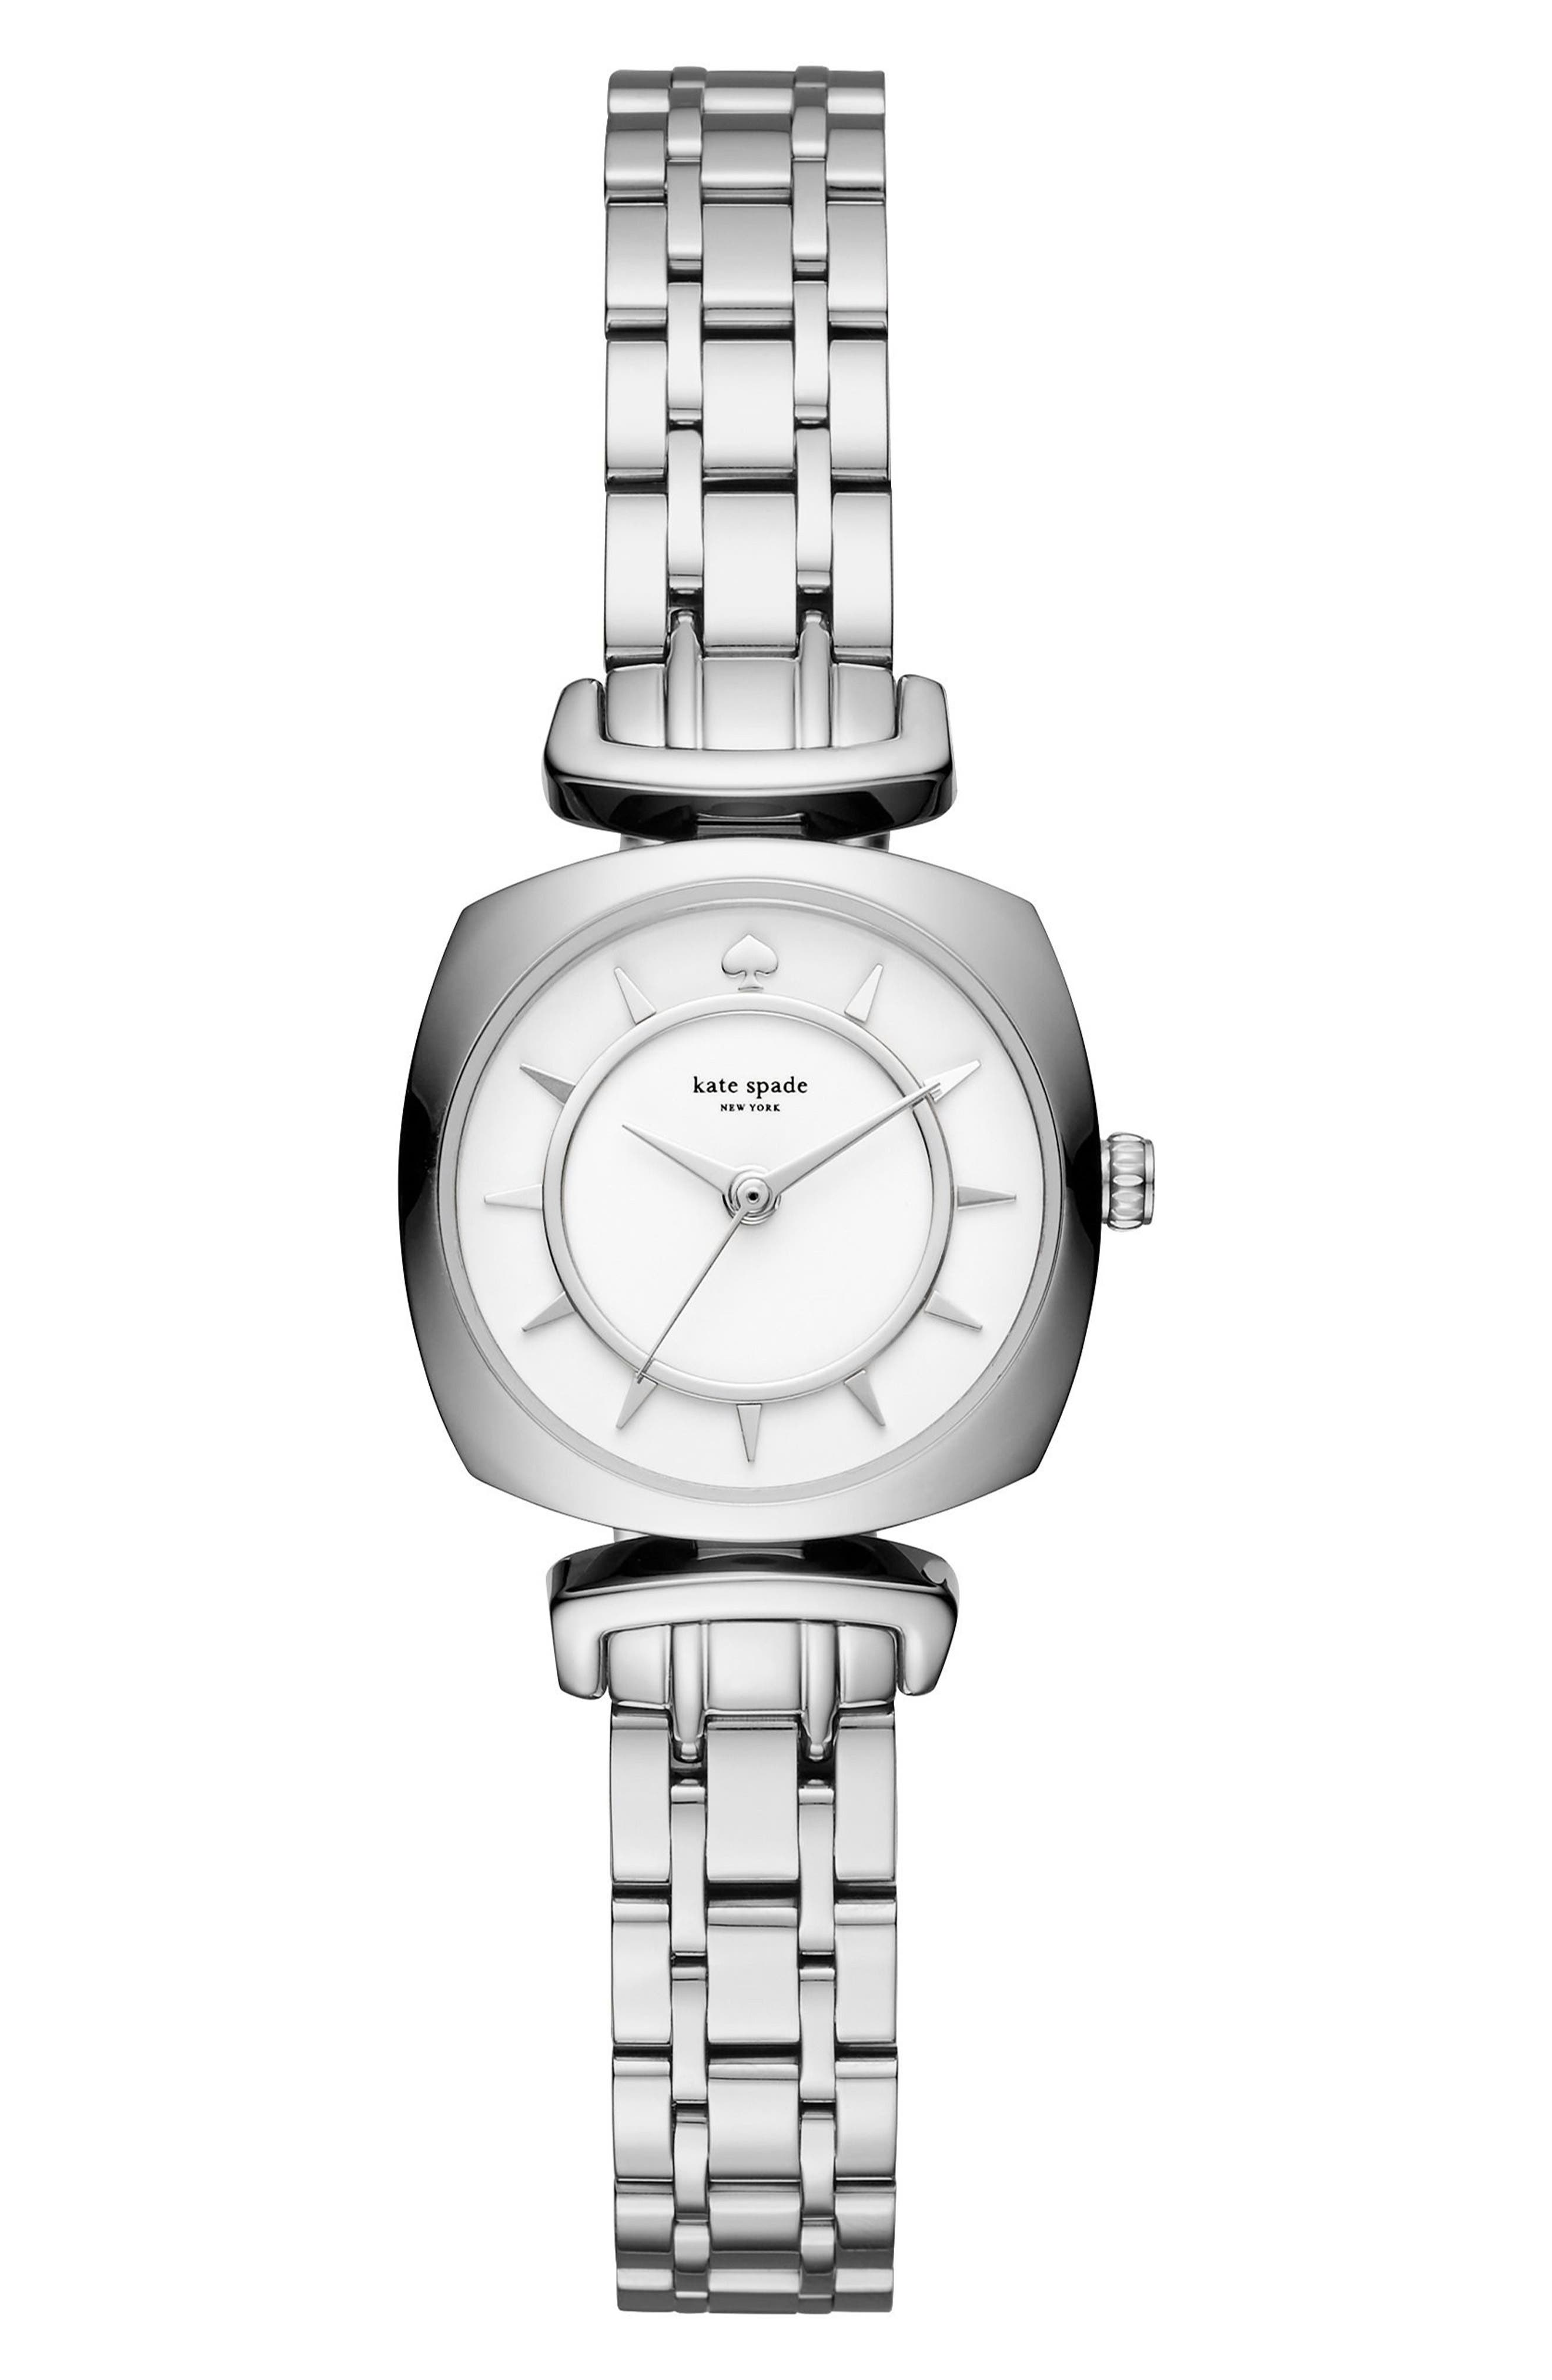 KATE SPADE NEW YORK barrow leather strap/bracelet watch, 24mm